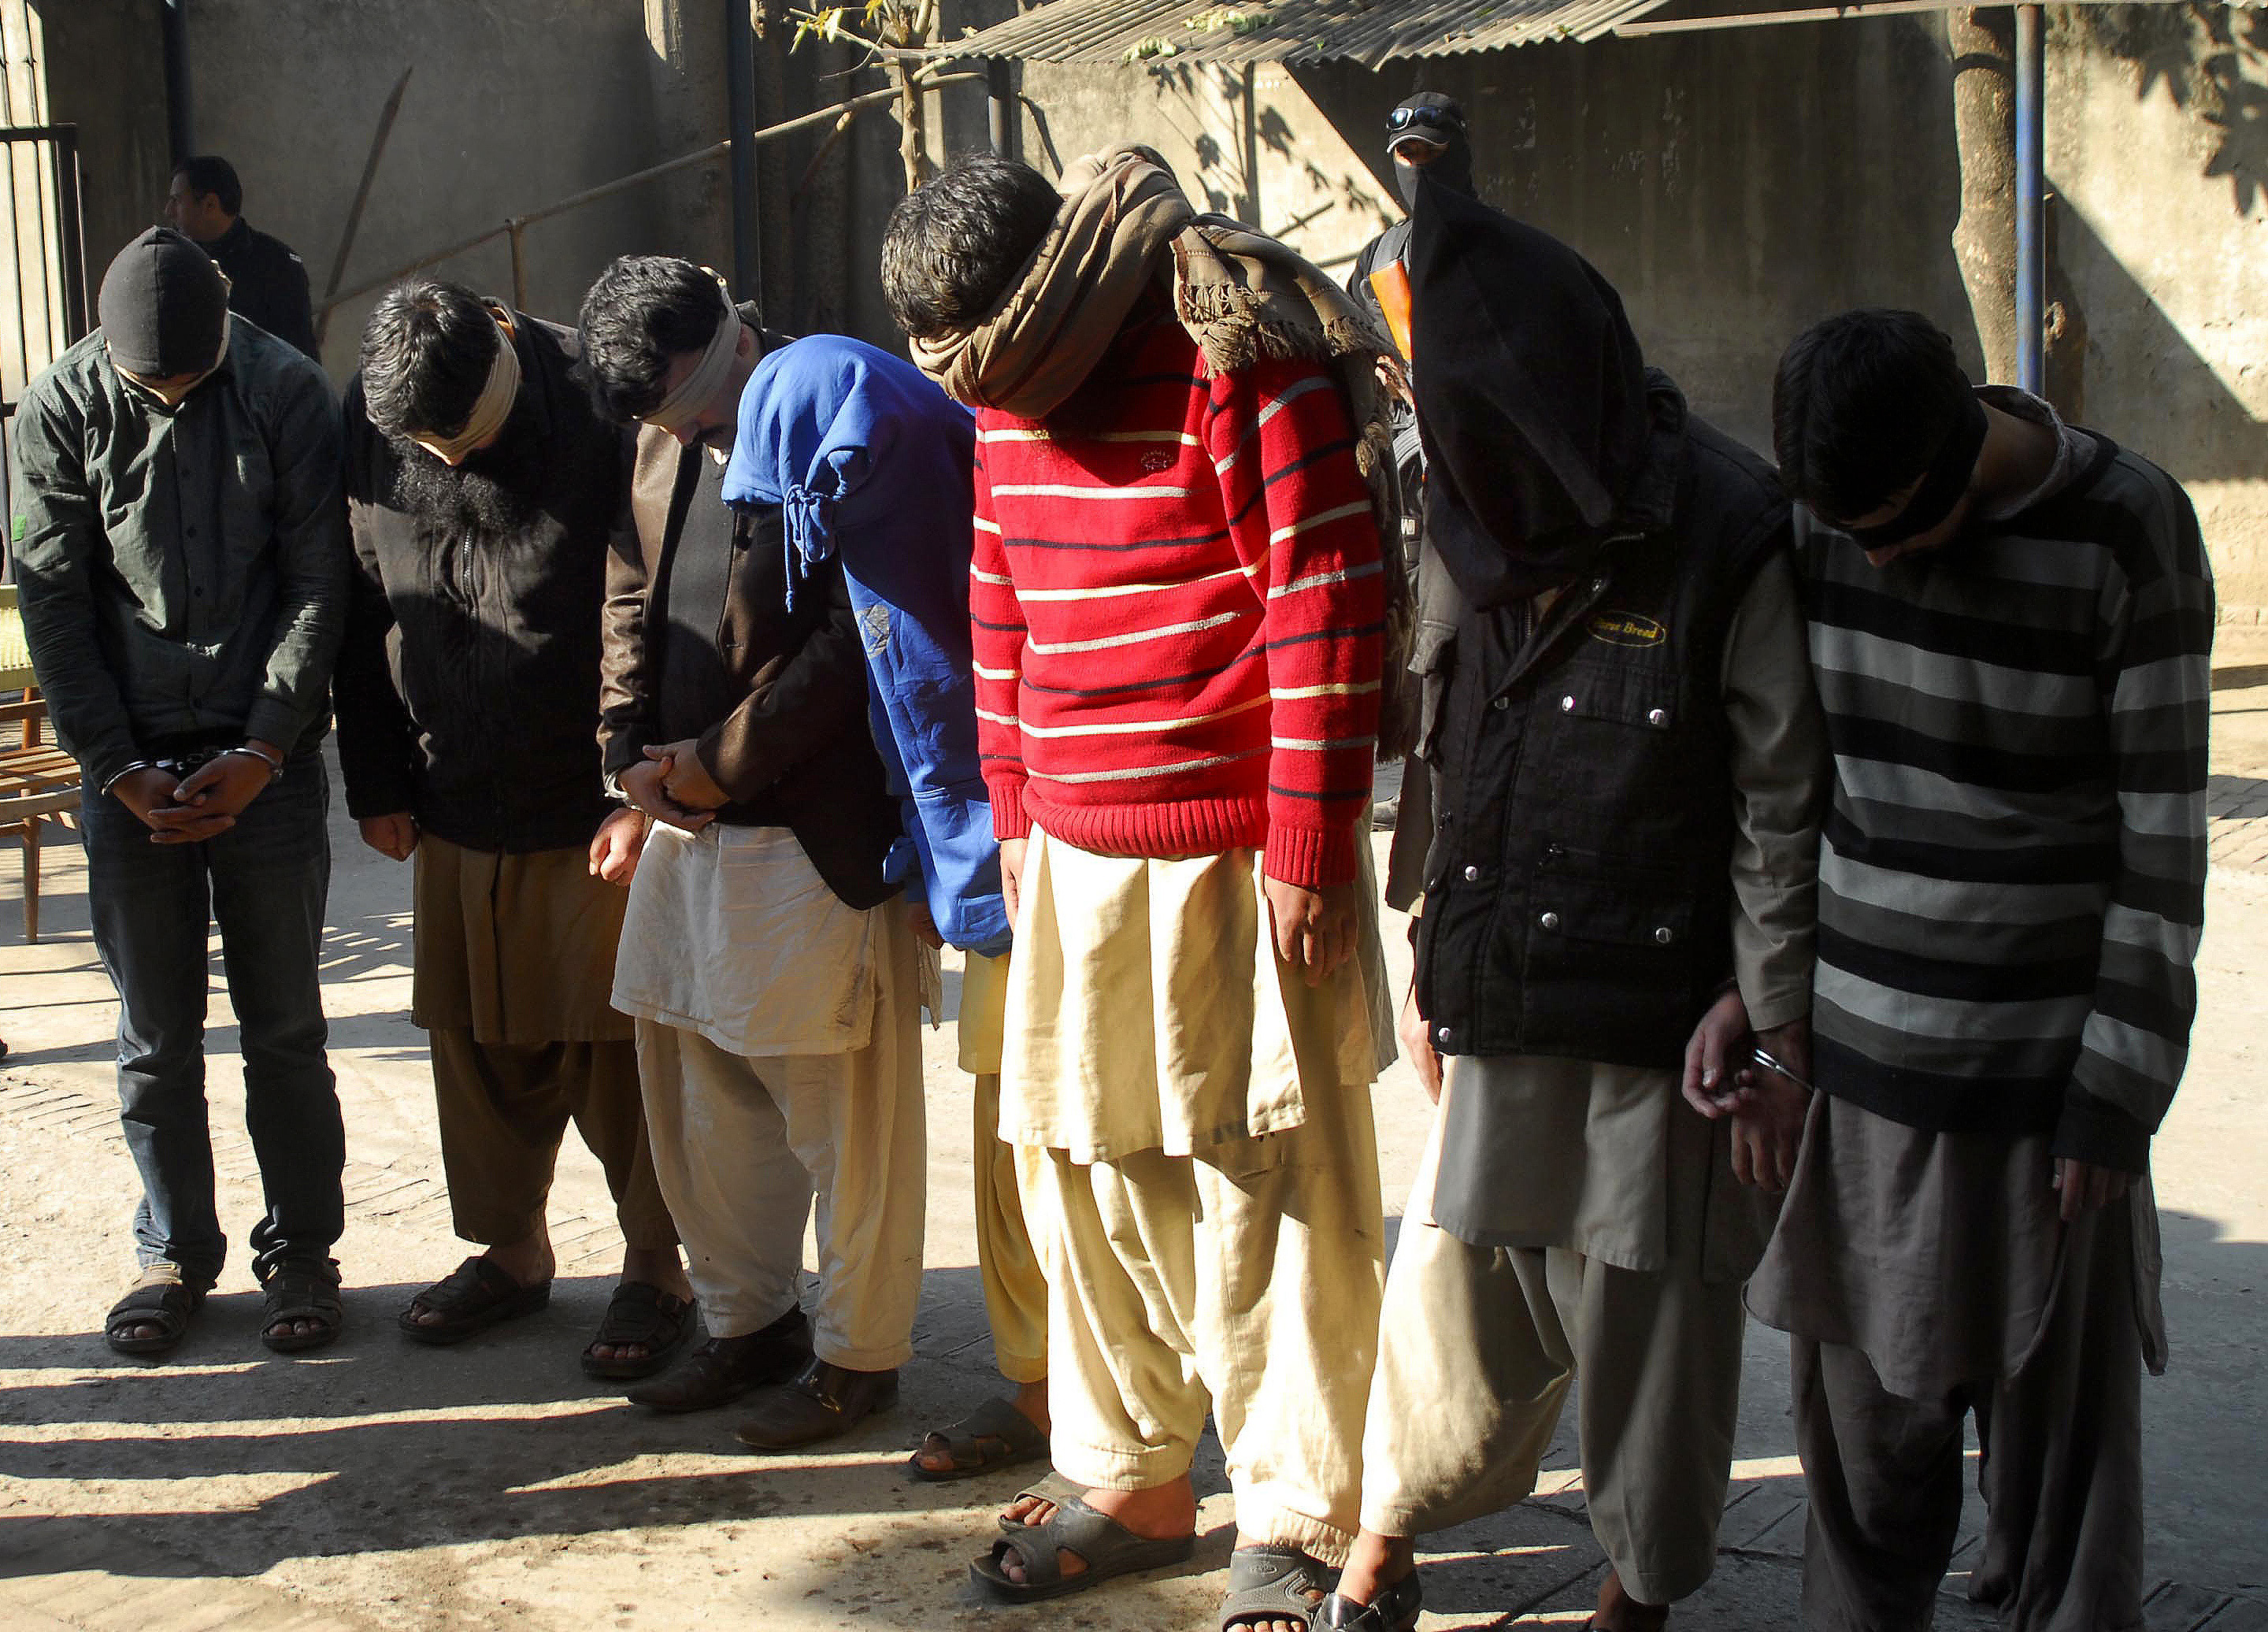 Pakistani suspects allegedly affiliated with the Islamic State group, wait to appear in the anti-terrorist court, in Gujranwala, Pakistan, on Dec. 29, 2015. Pakistani counter terrorism officials raided a home and detained 13 local militants who were ...